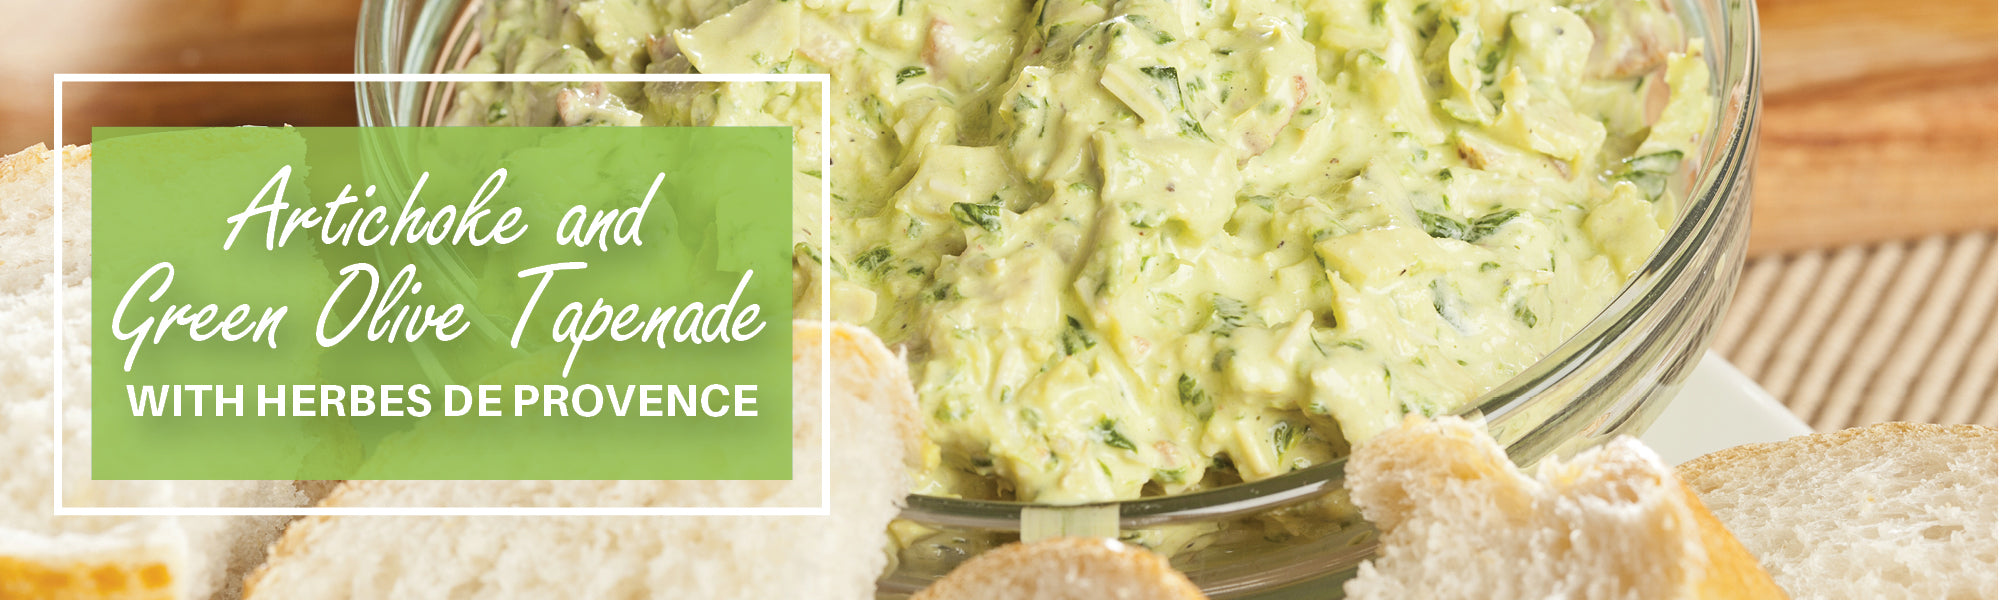 Artichoke and  Green Olive Tapenade with Herbes de Provence